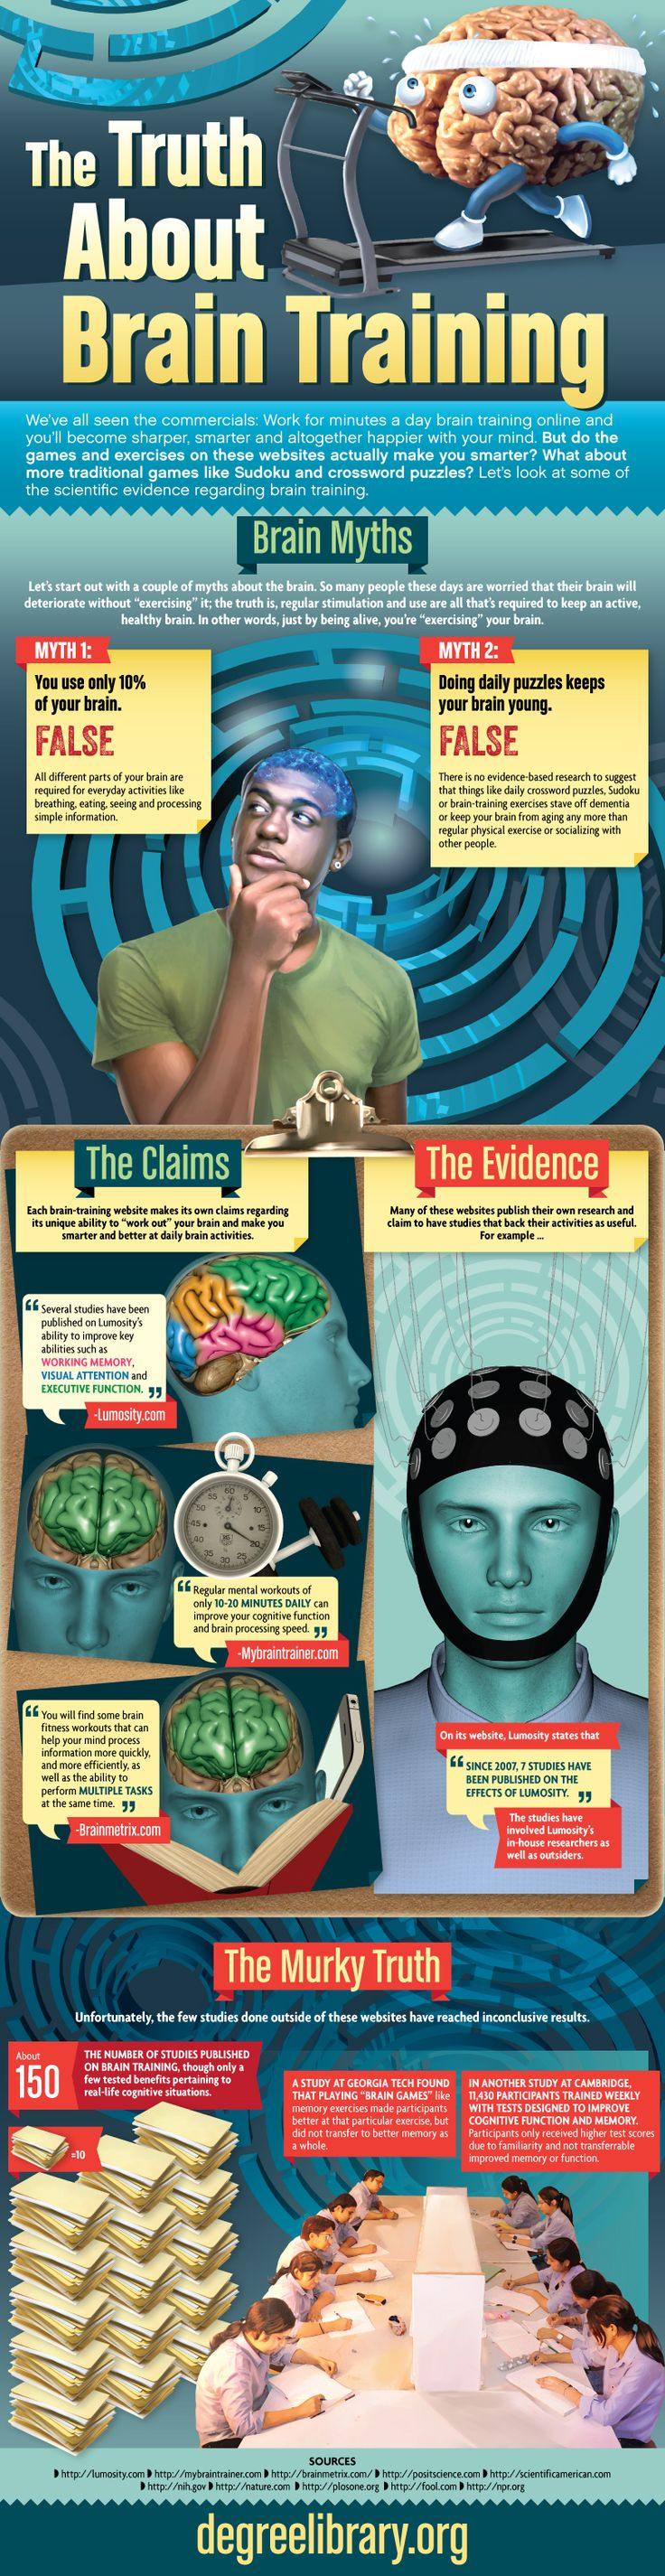 La verdad sobre el entrenamiento del cerebro Source: DegreeLibrary.org #infografia #infographic #education